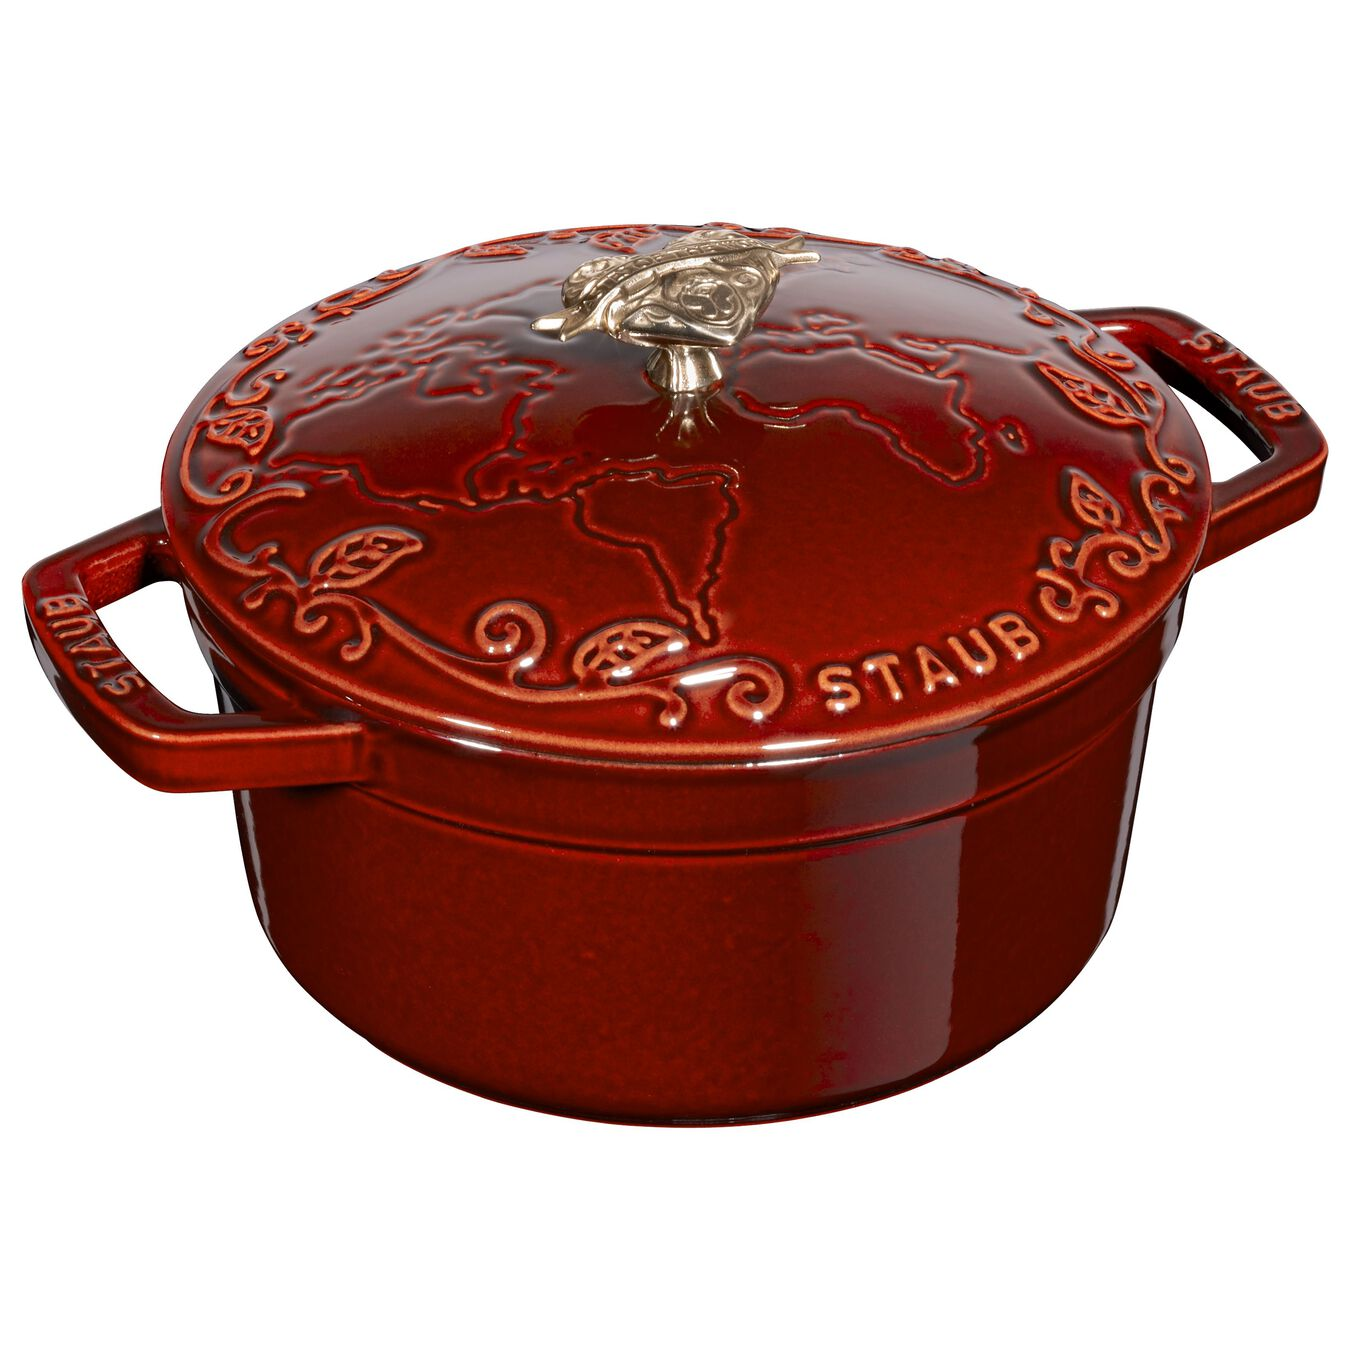 Cocotte 20 cm, rund, Grenadine-Rot, Gusseisen,,large 7